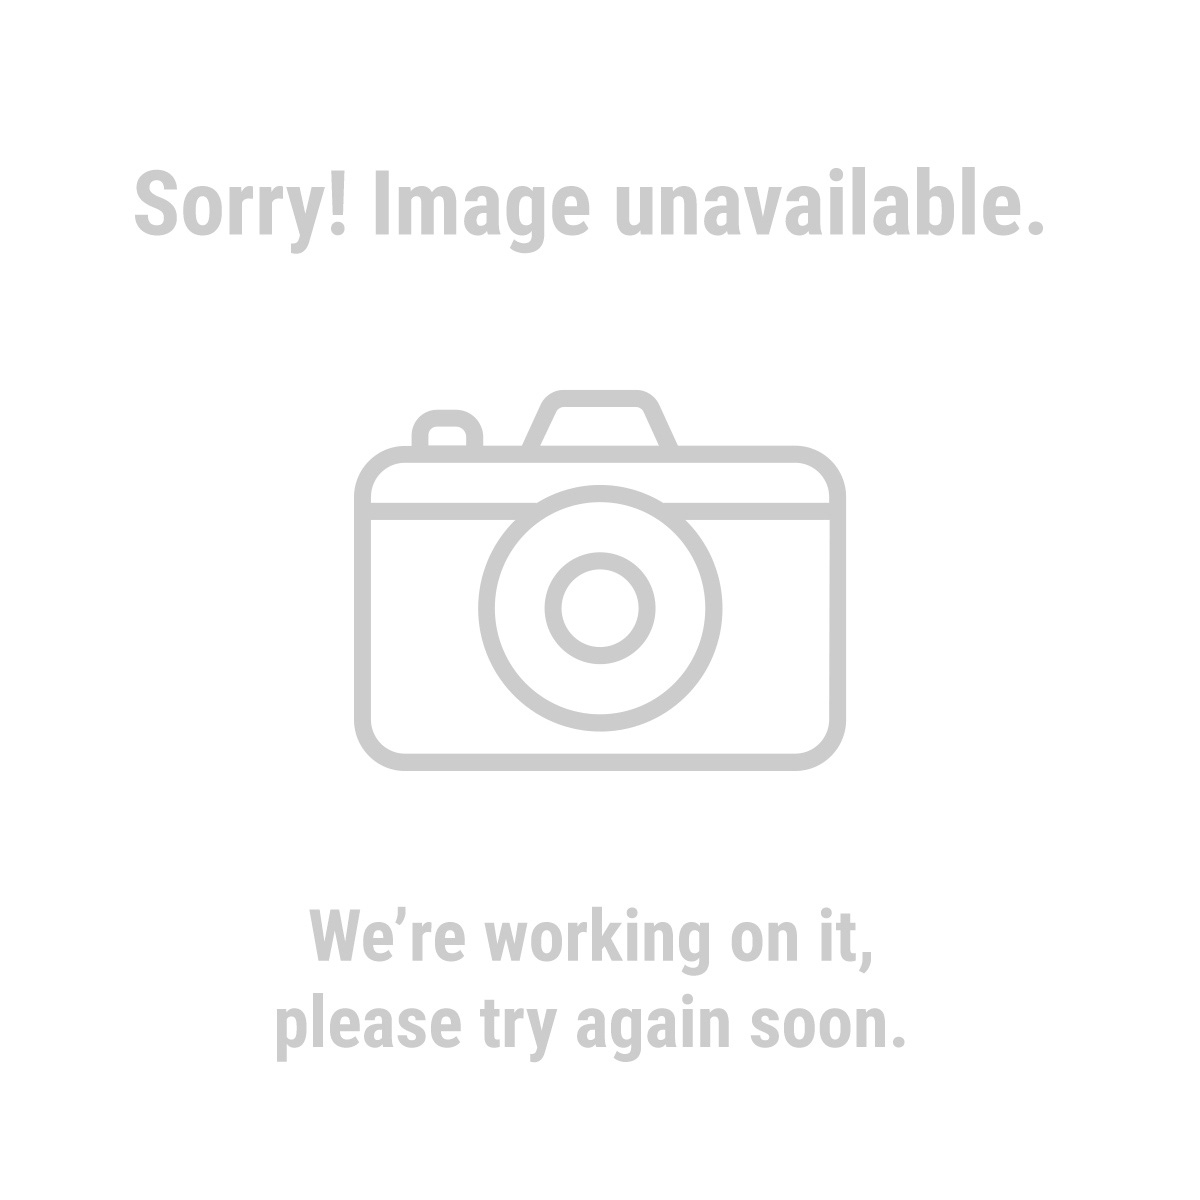 Cen-Tech 69096 7 Function Digital Multimeter